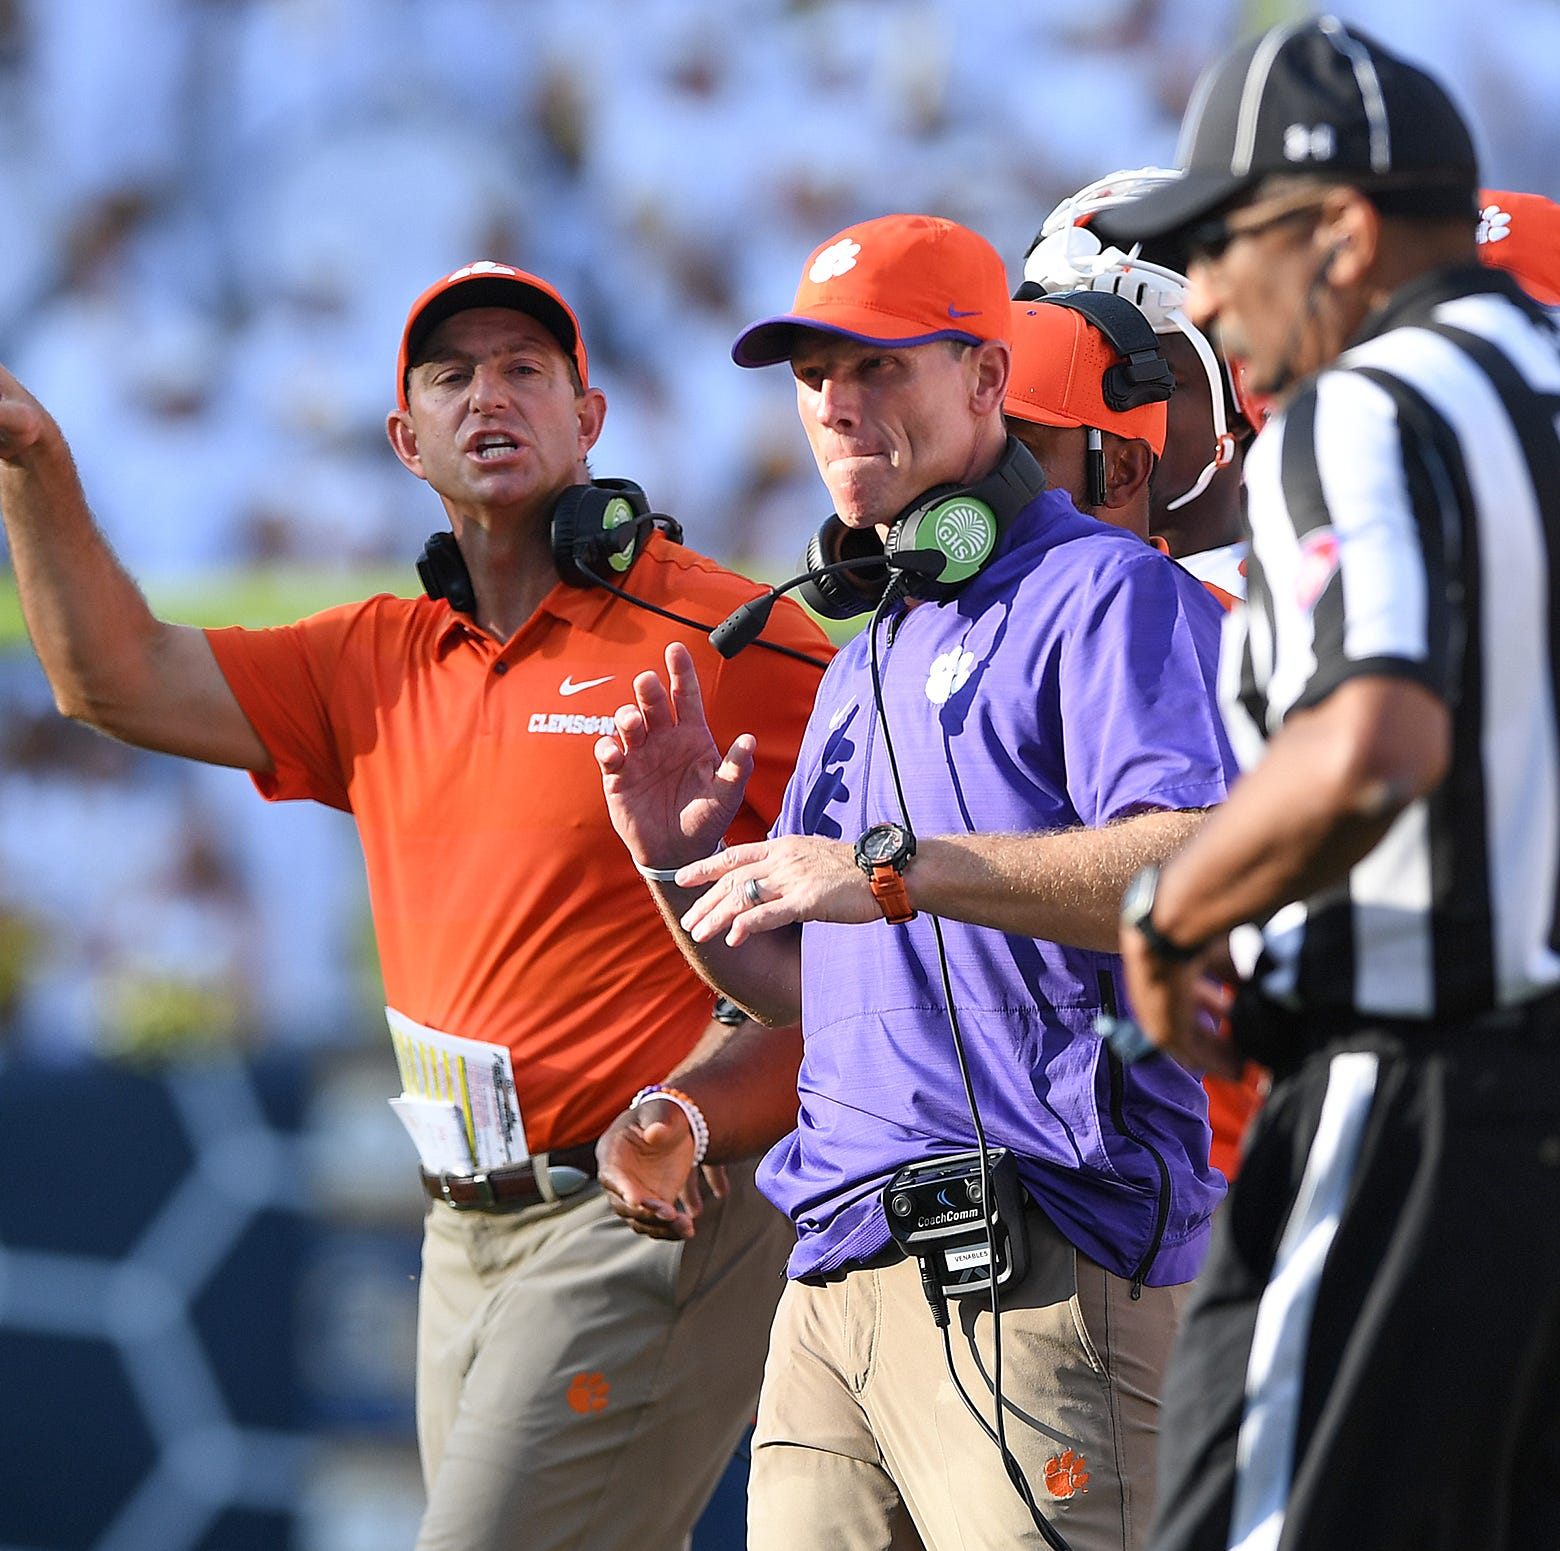 Run-Pass Option plays are fooling ACC defenses and officials